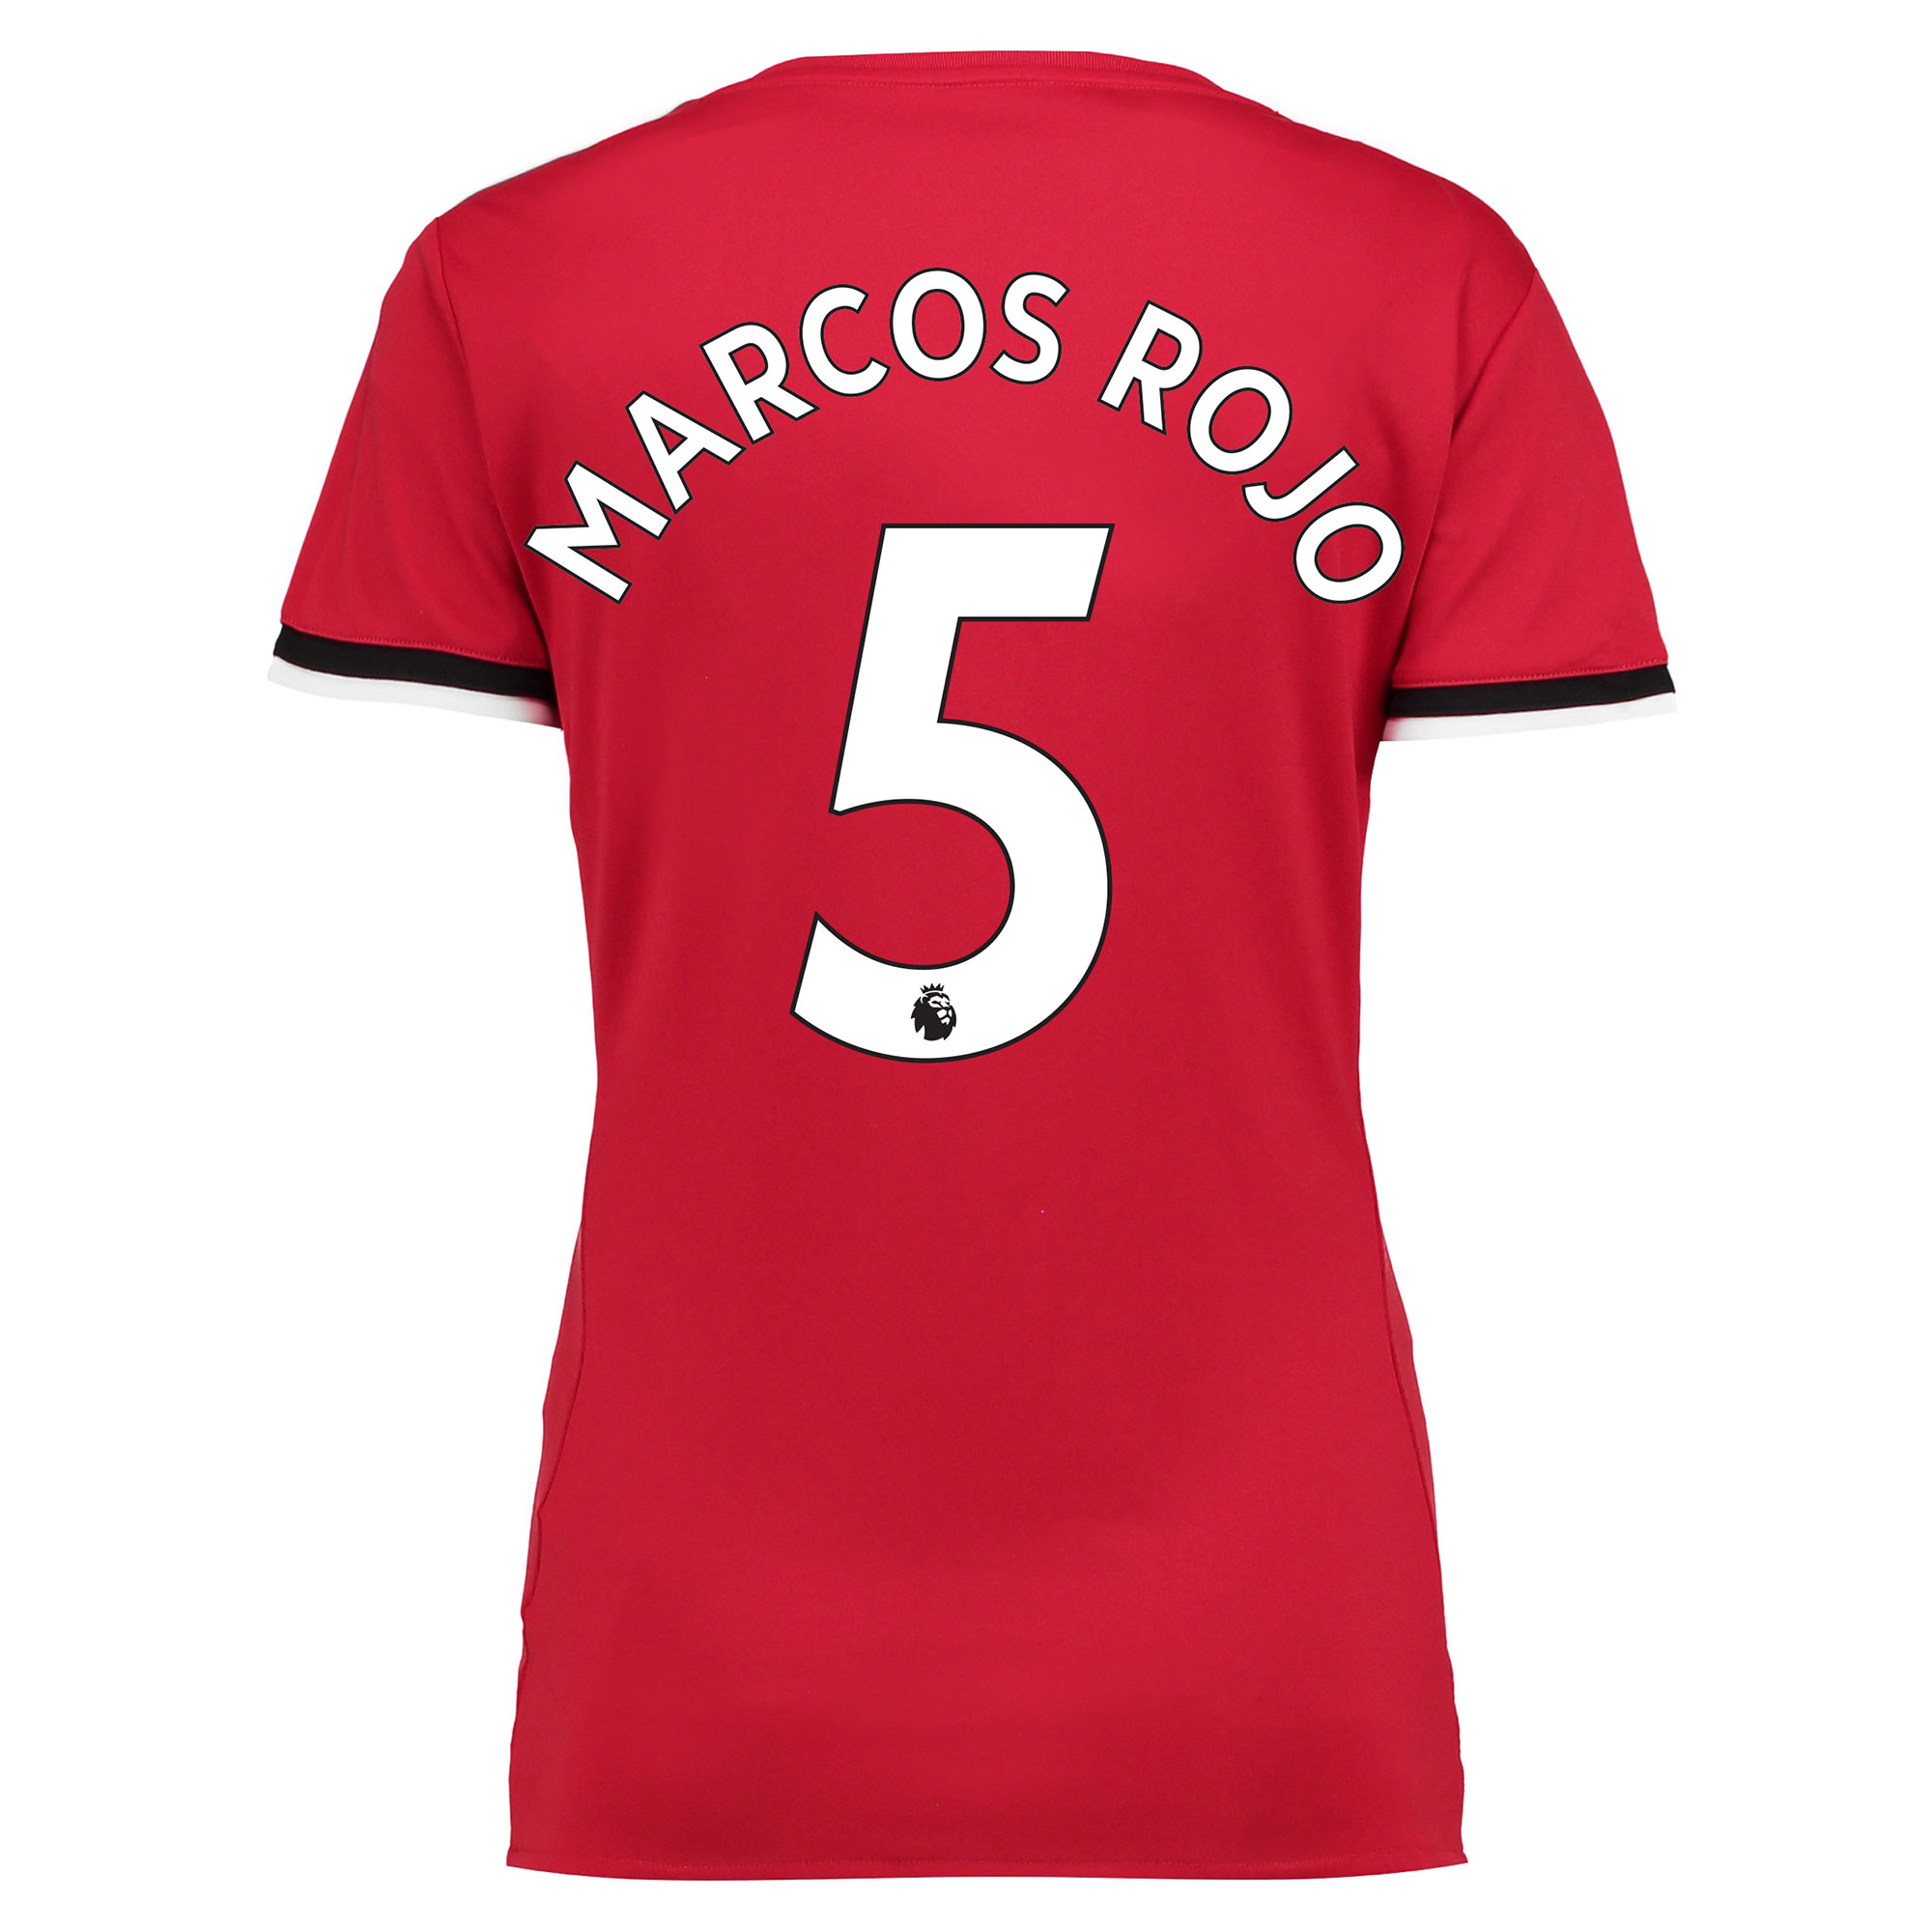 Manchester United Home Shirt 2017-18 - Womens with Marcos Rojo 5 print